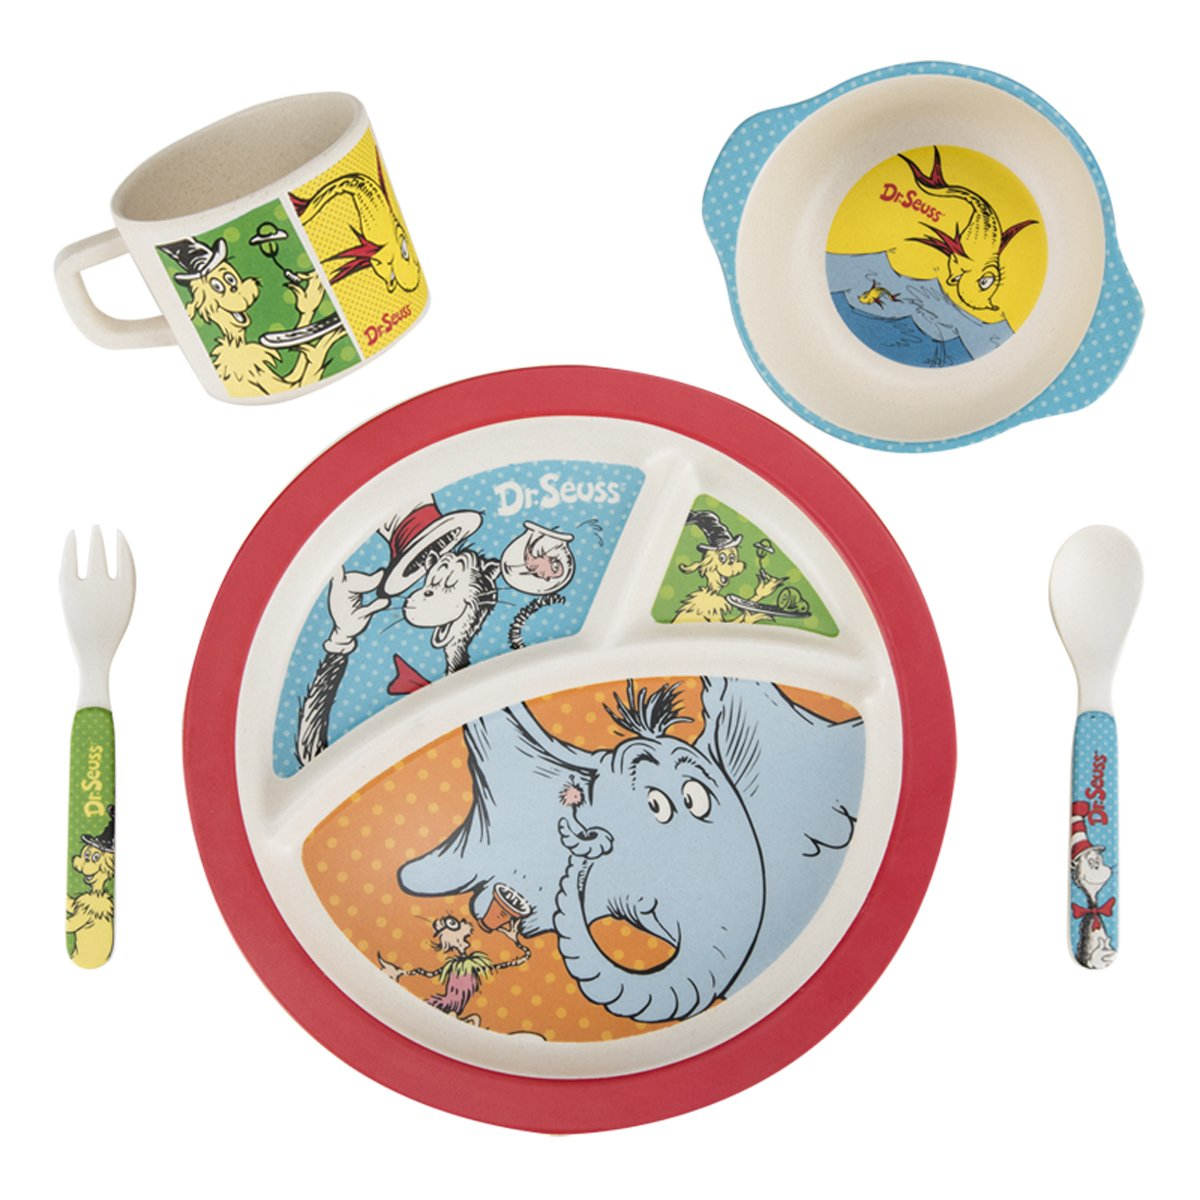 Amazon.com Vandor 17004 Dr. Seuss 5 Piece Bamboo Dinnerware Set Multicolored Kitchen \u0026 Dining  sc 1 st  Amazon.com & Amazon.com: Vandor 17004 Dr. Seuss 5 Piece Bamboo Dinnerware Set ...